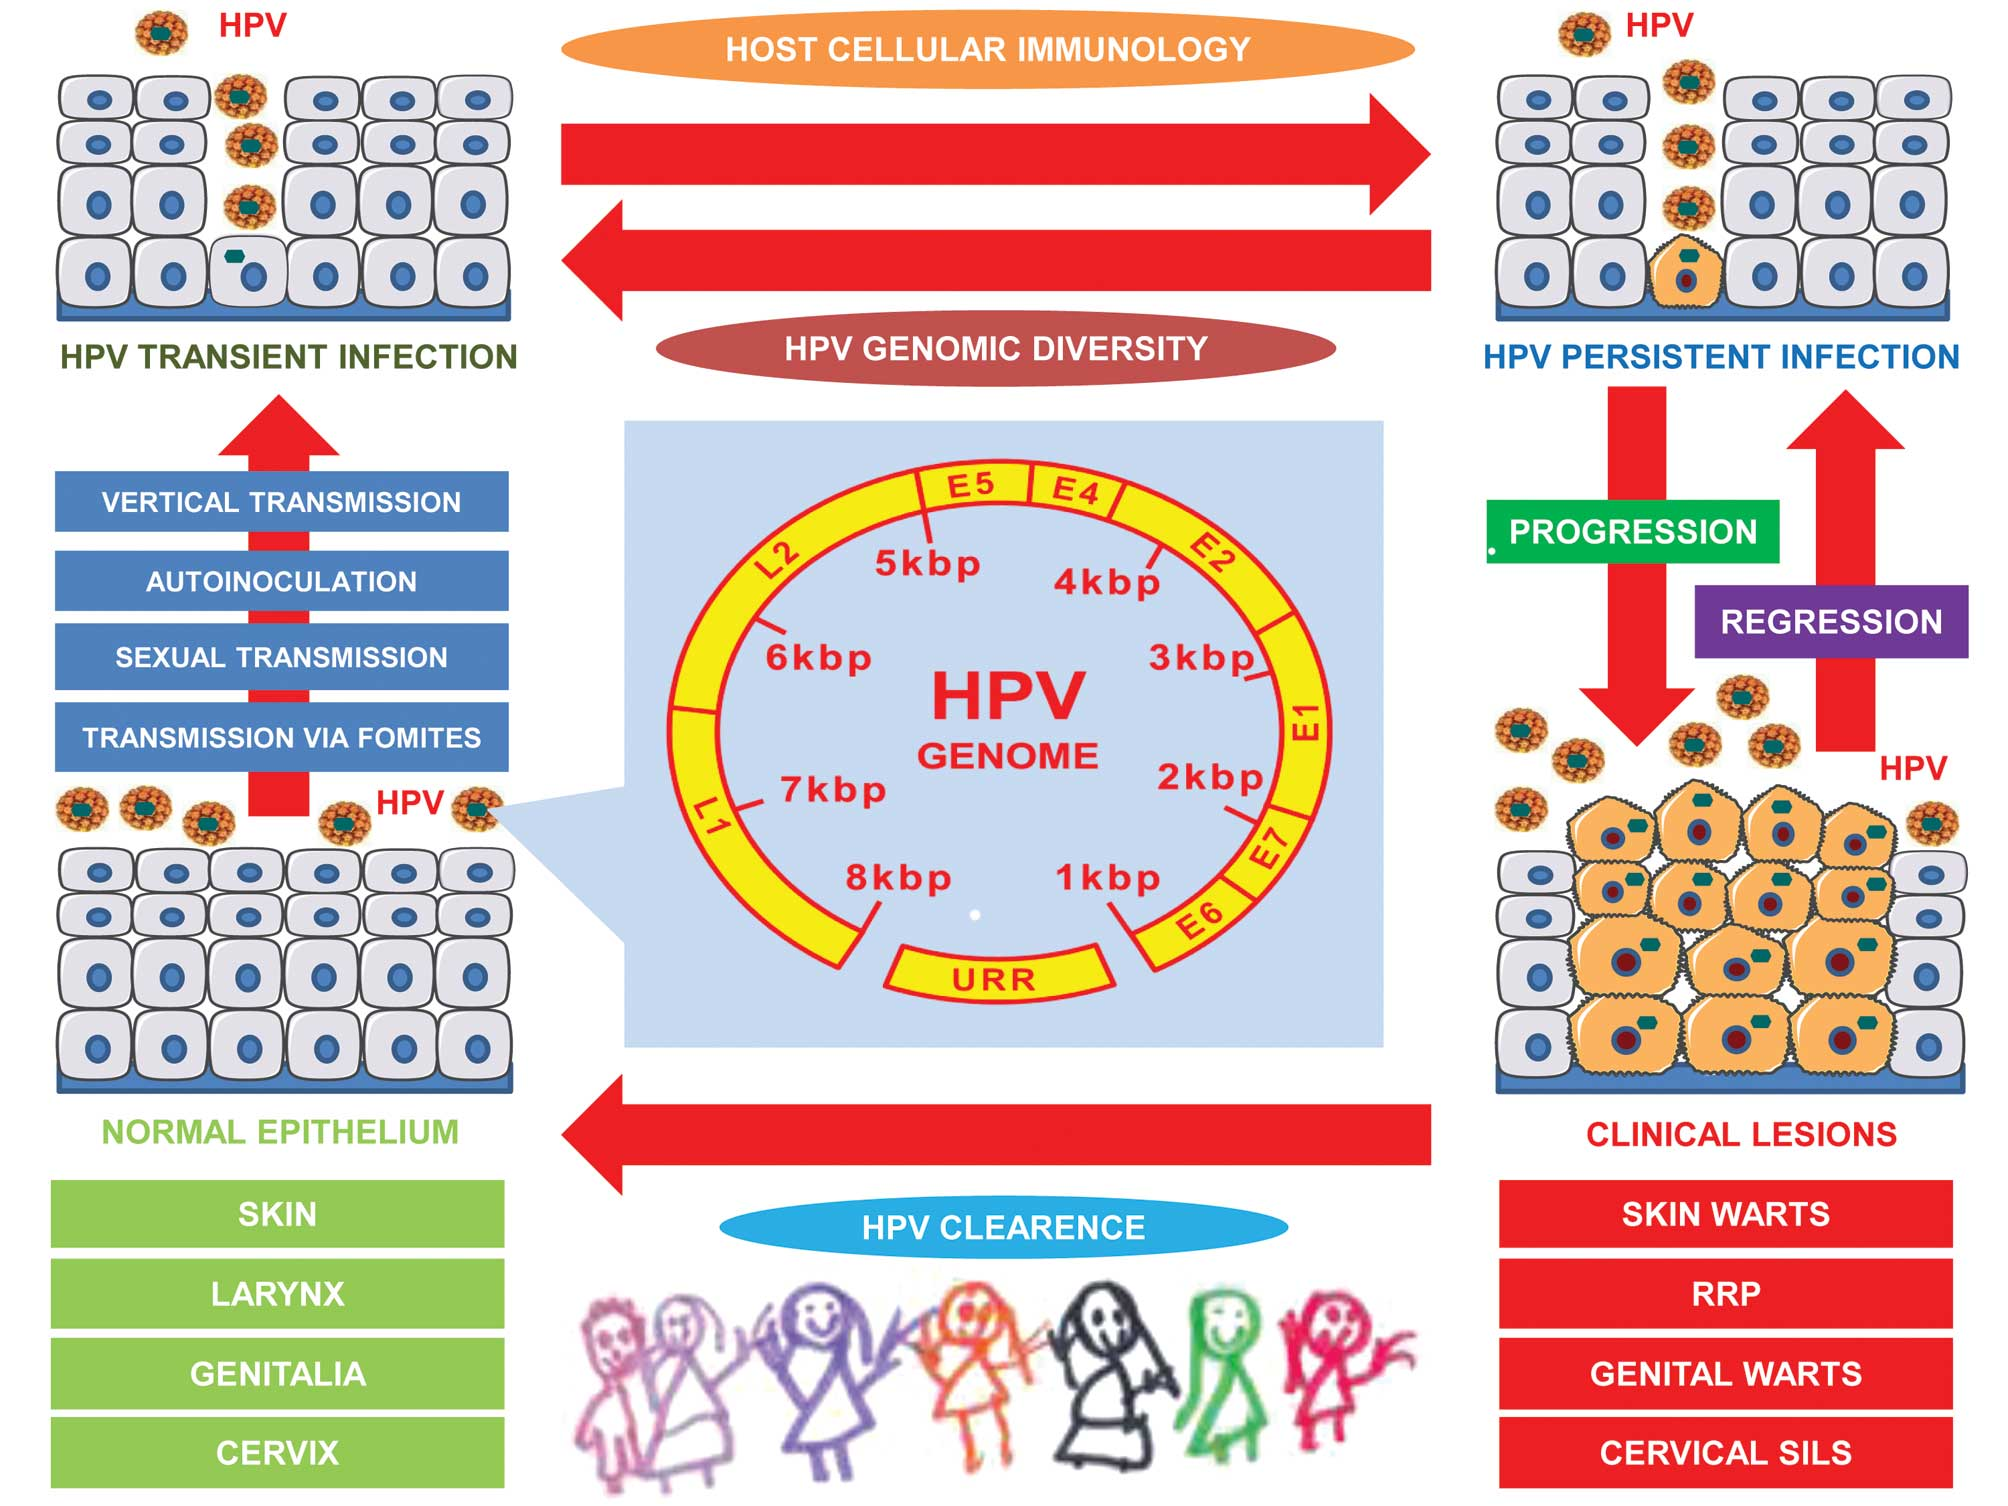 human papillomavirus infection in newborns risk of cervical cancer without hpv